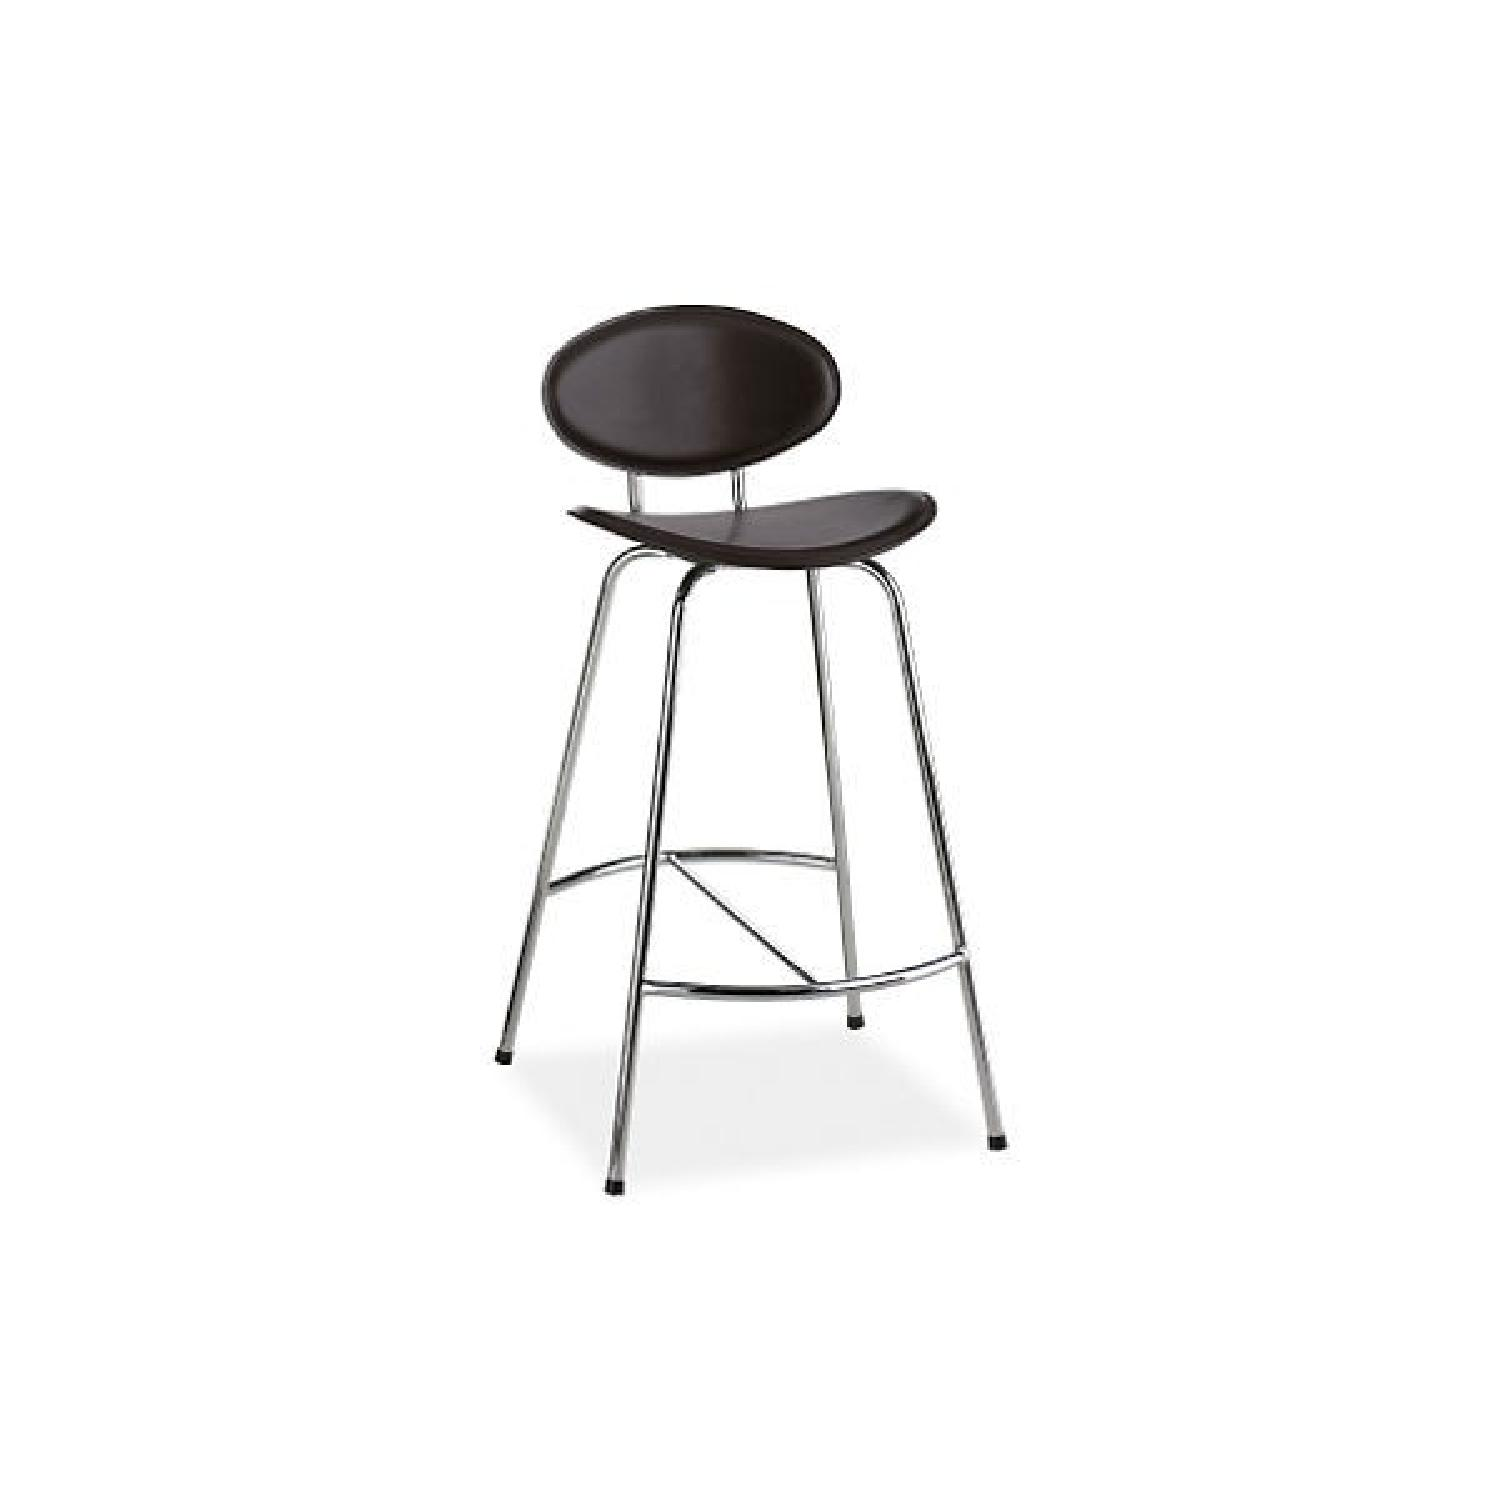 Room & Board Chrome & Black Barstools